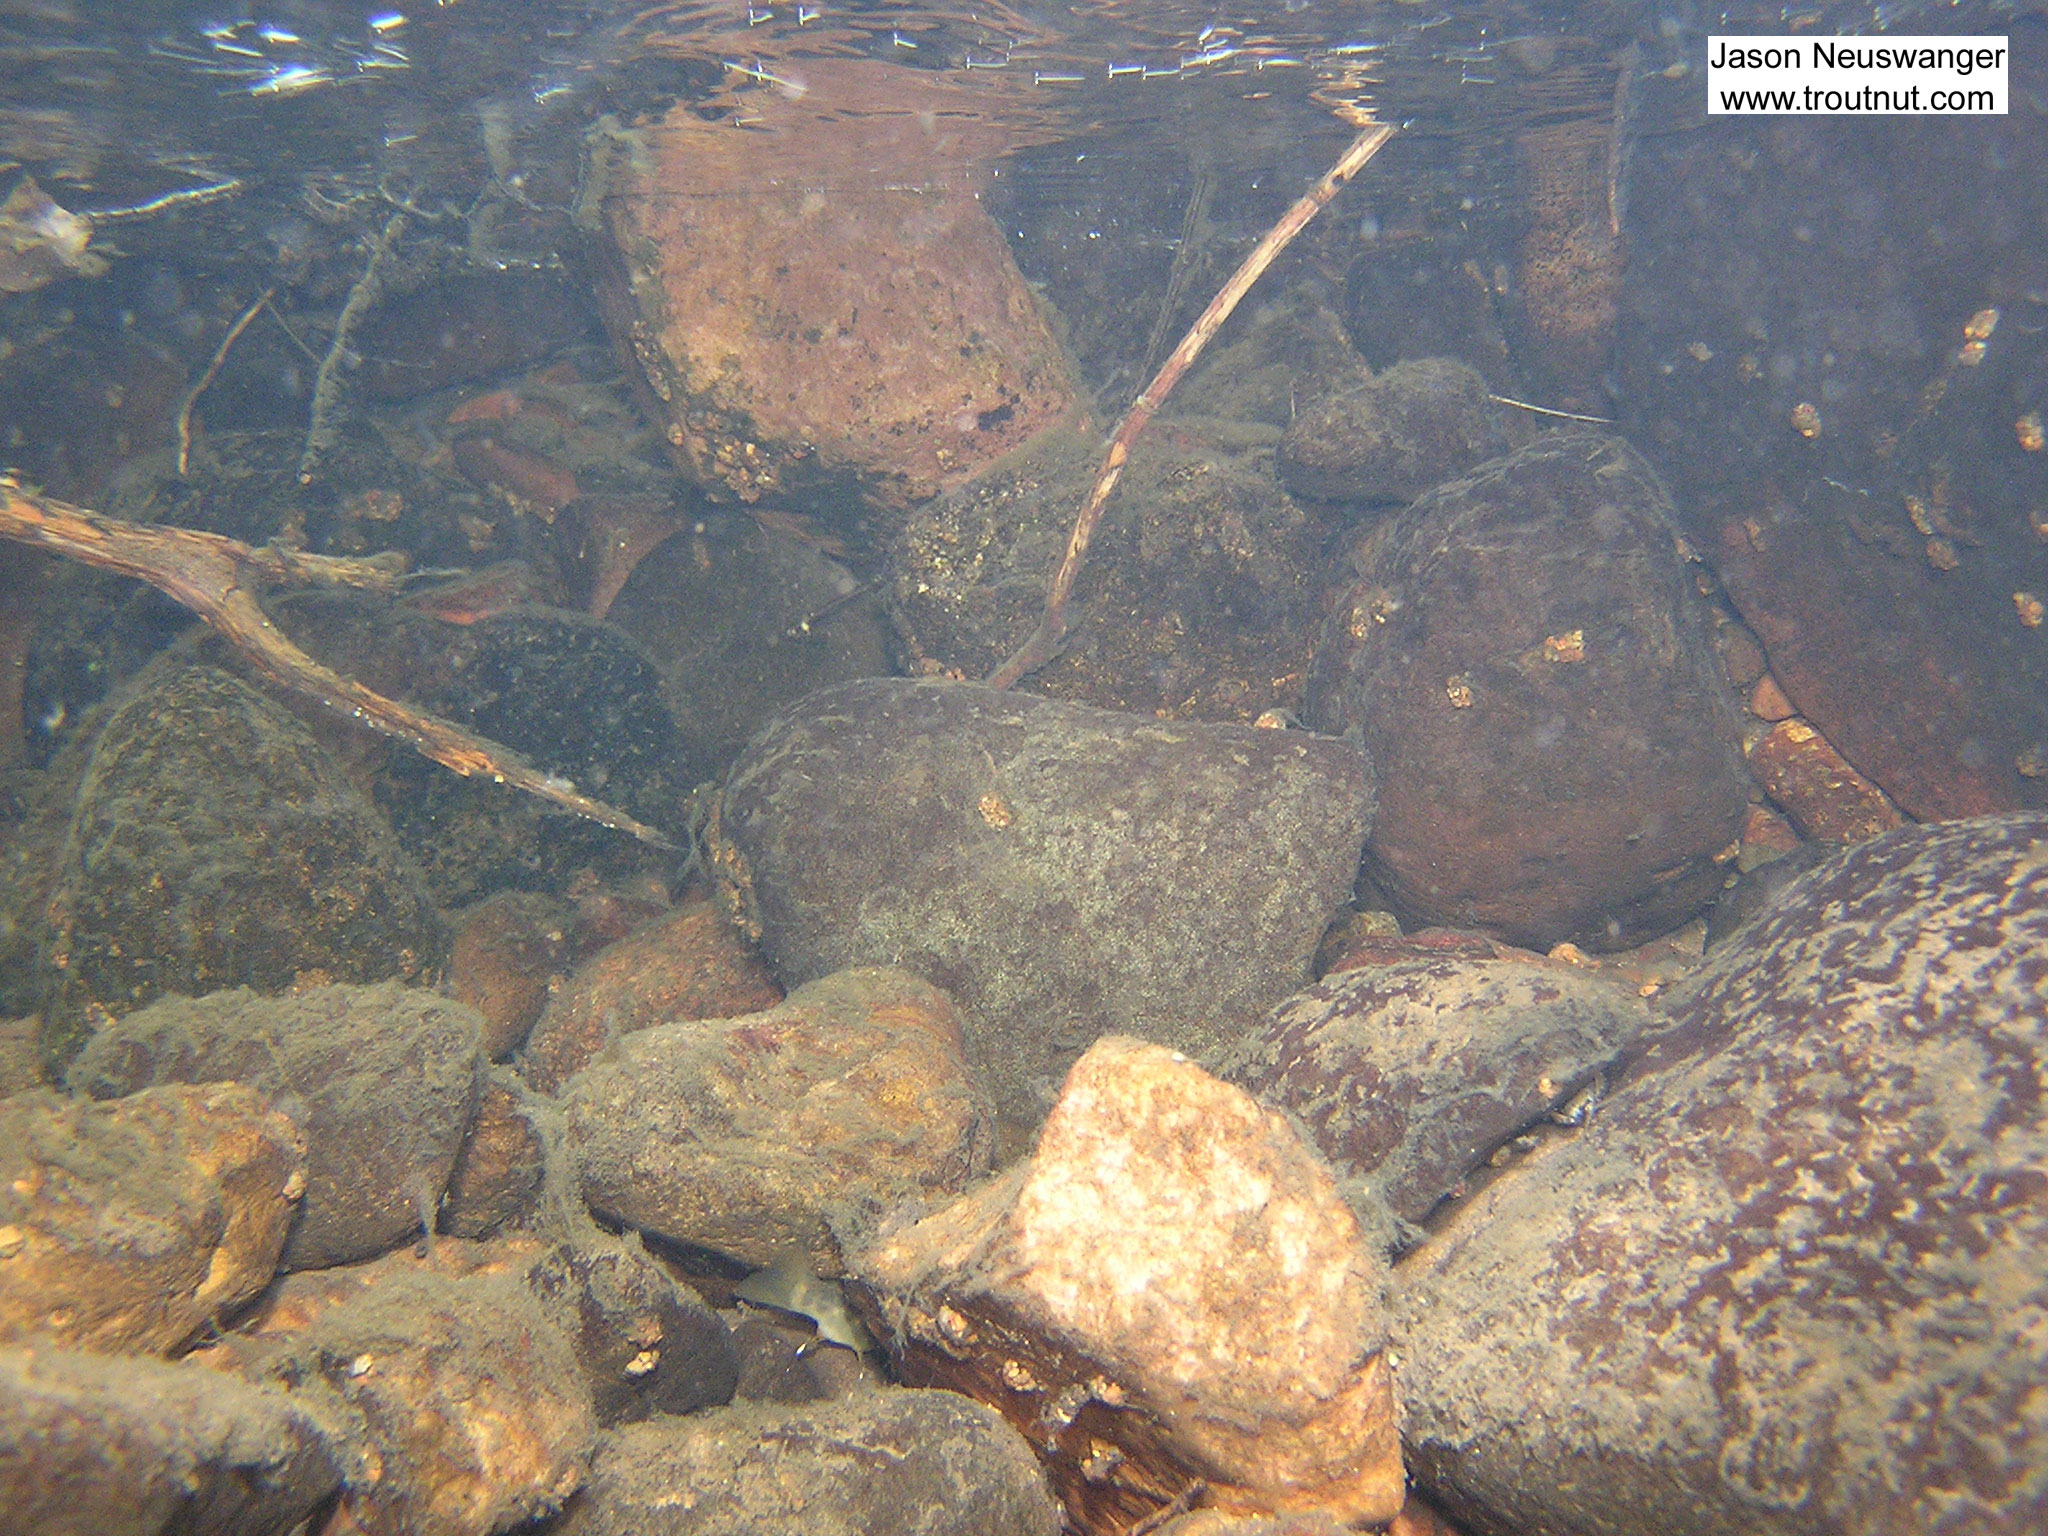 Can you spot the brook trout in this picture? This is a good example of how they seek cover when a danger (my camera) approaches. From Mystery Creek # 4 in Wisconsin.